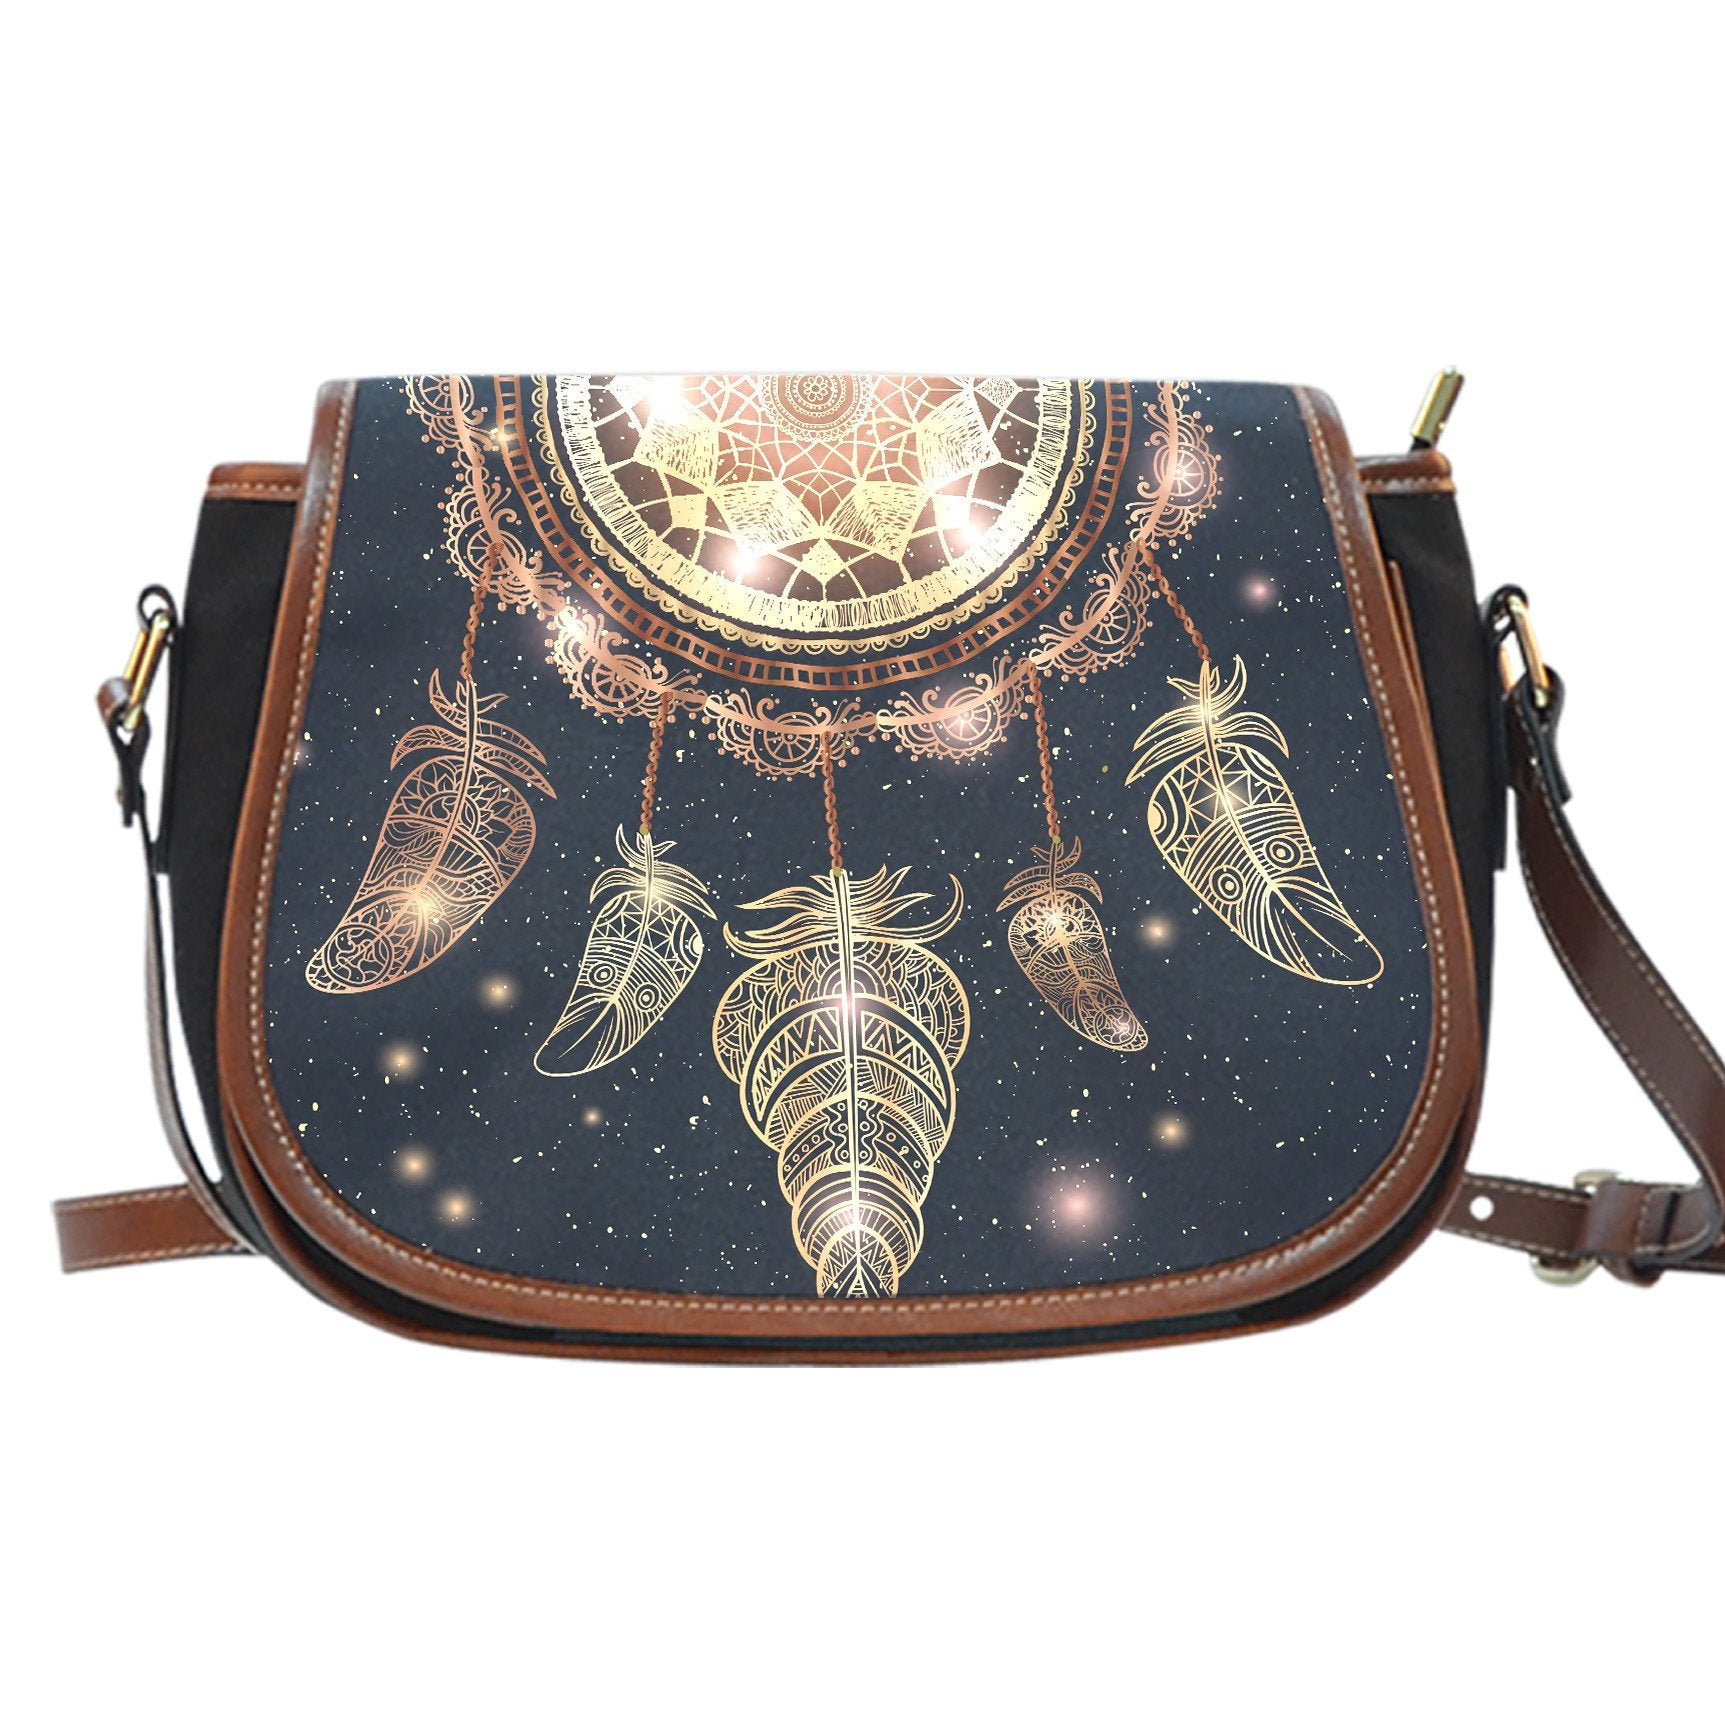 Dream Catcher Saddle Bag